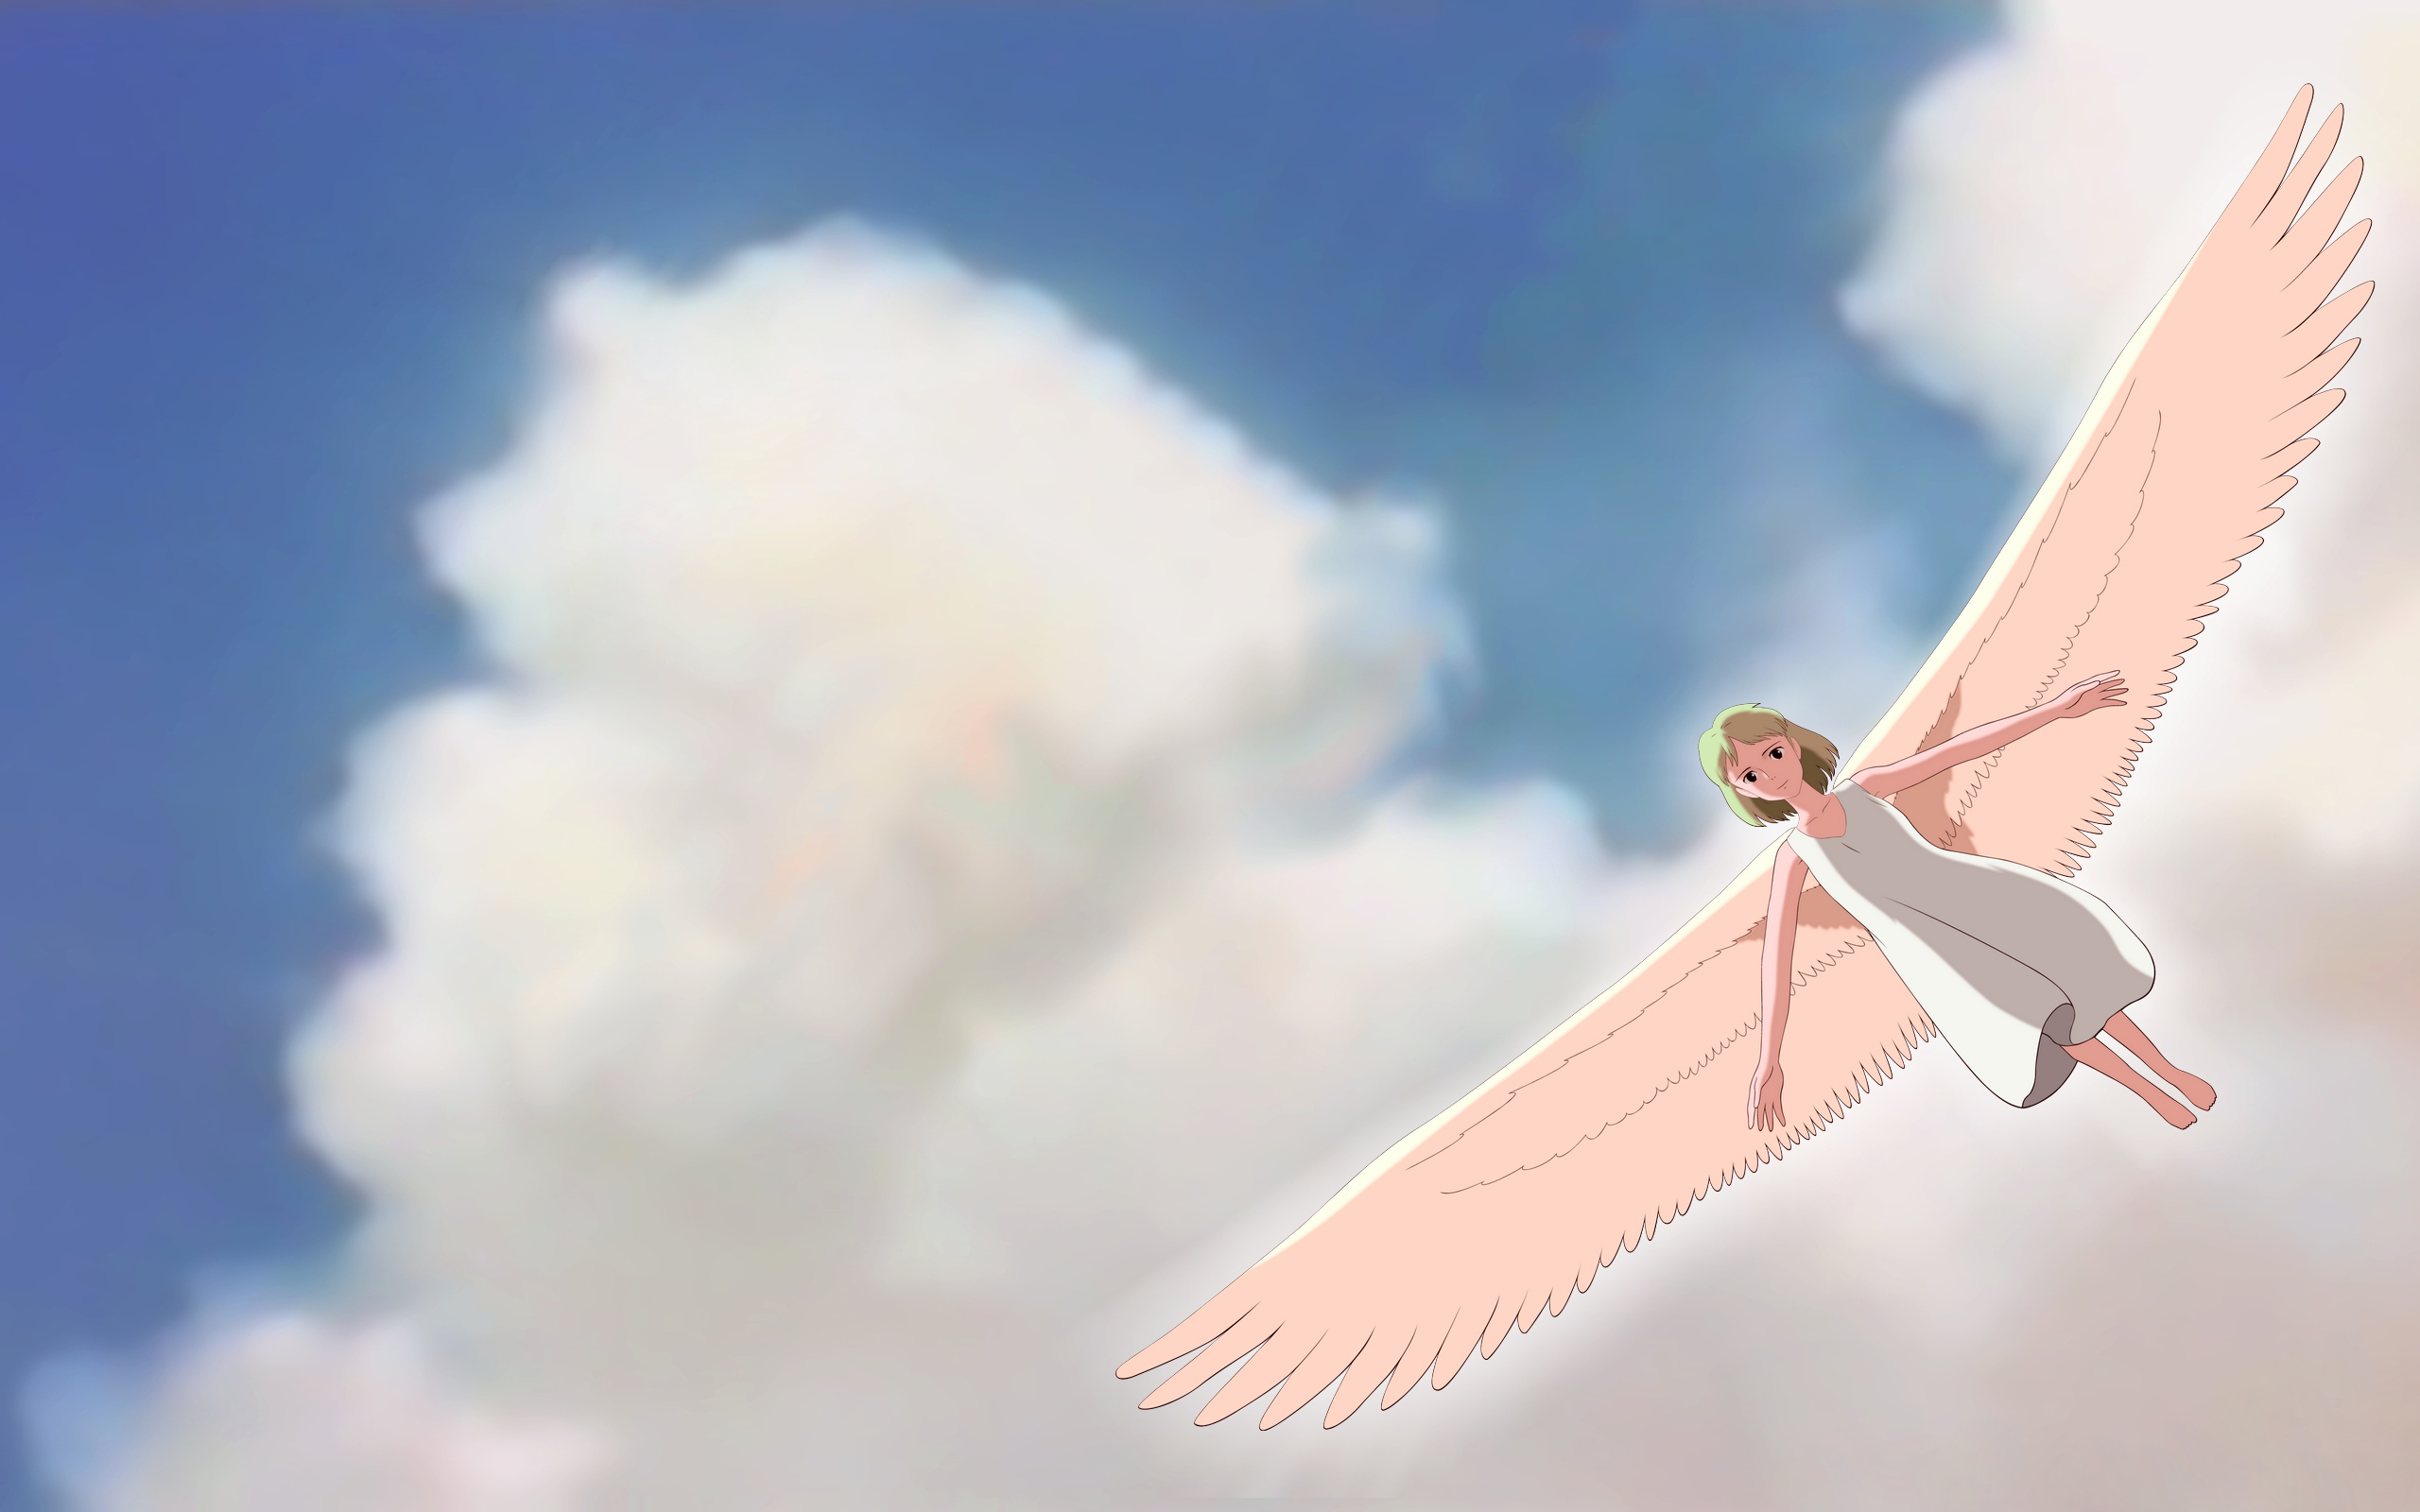 angels studio ghibli anime